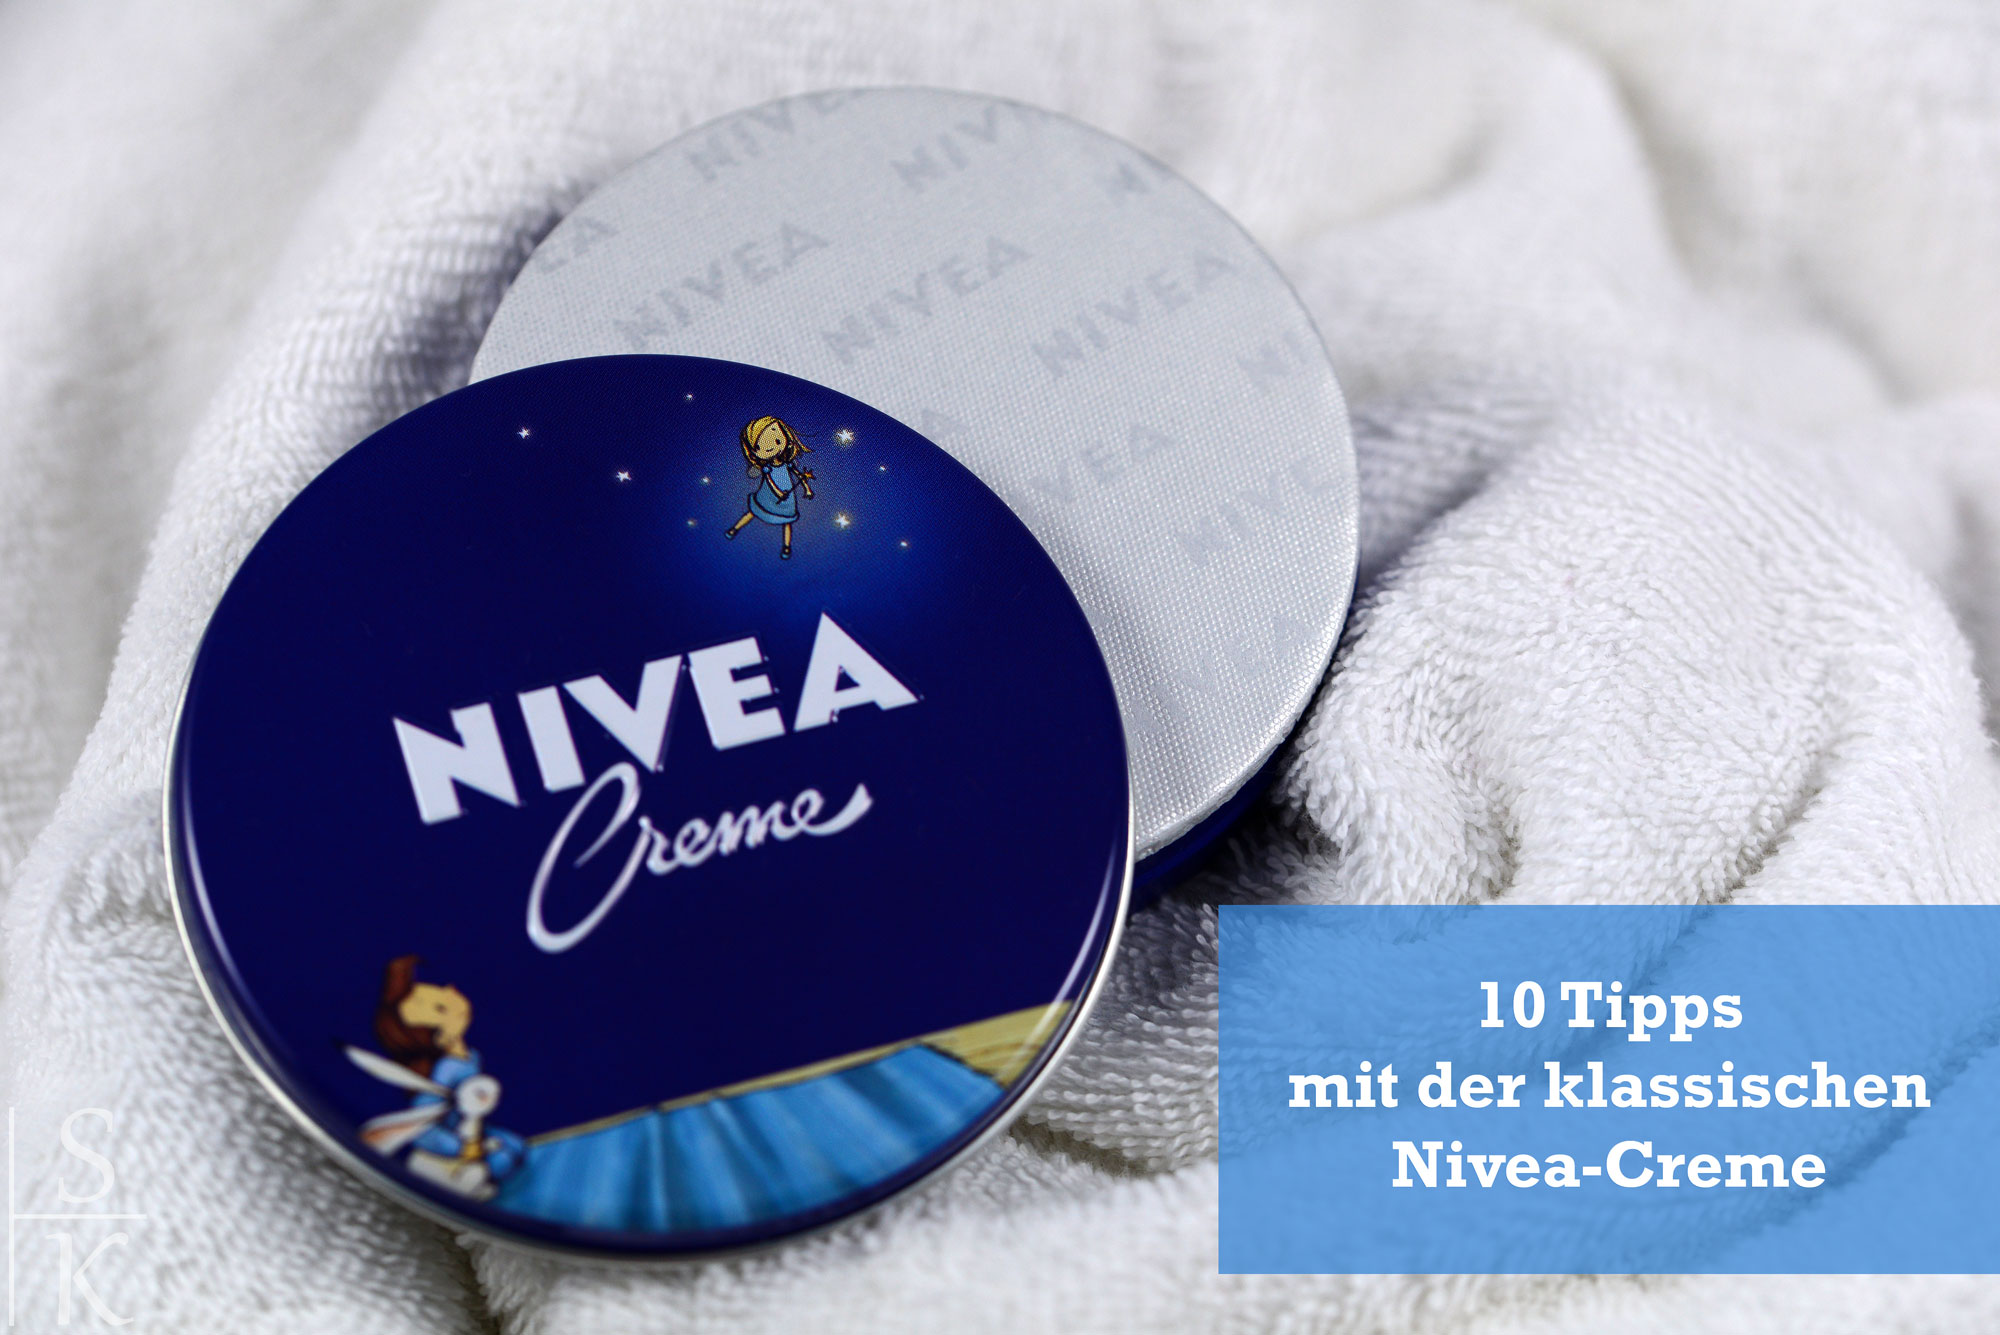 10 Beauty-Hacks mit Nivea-Creme